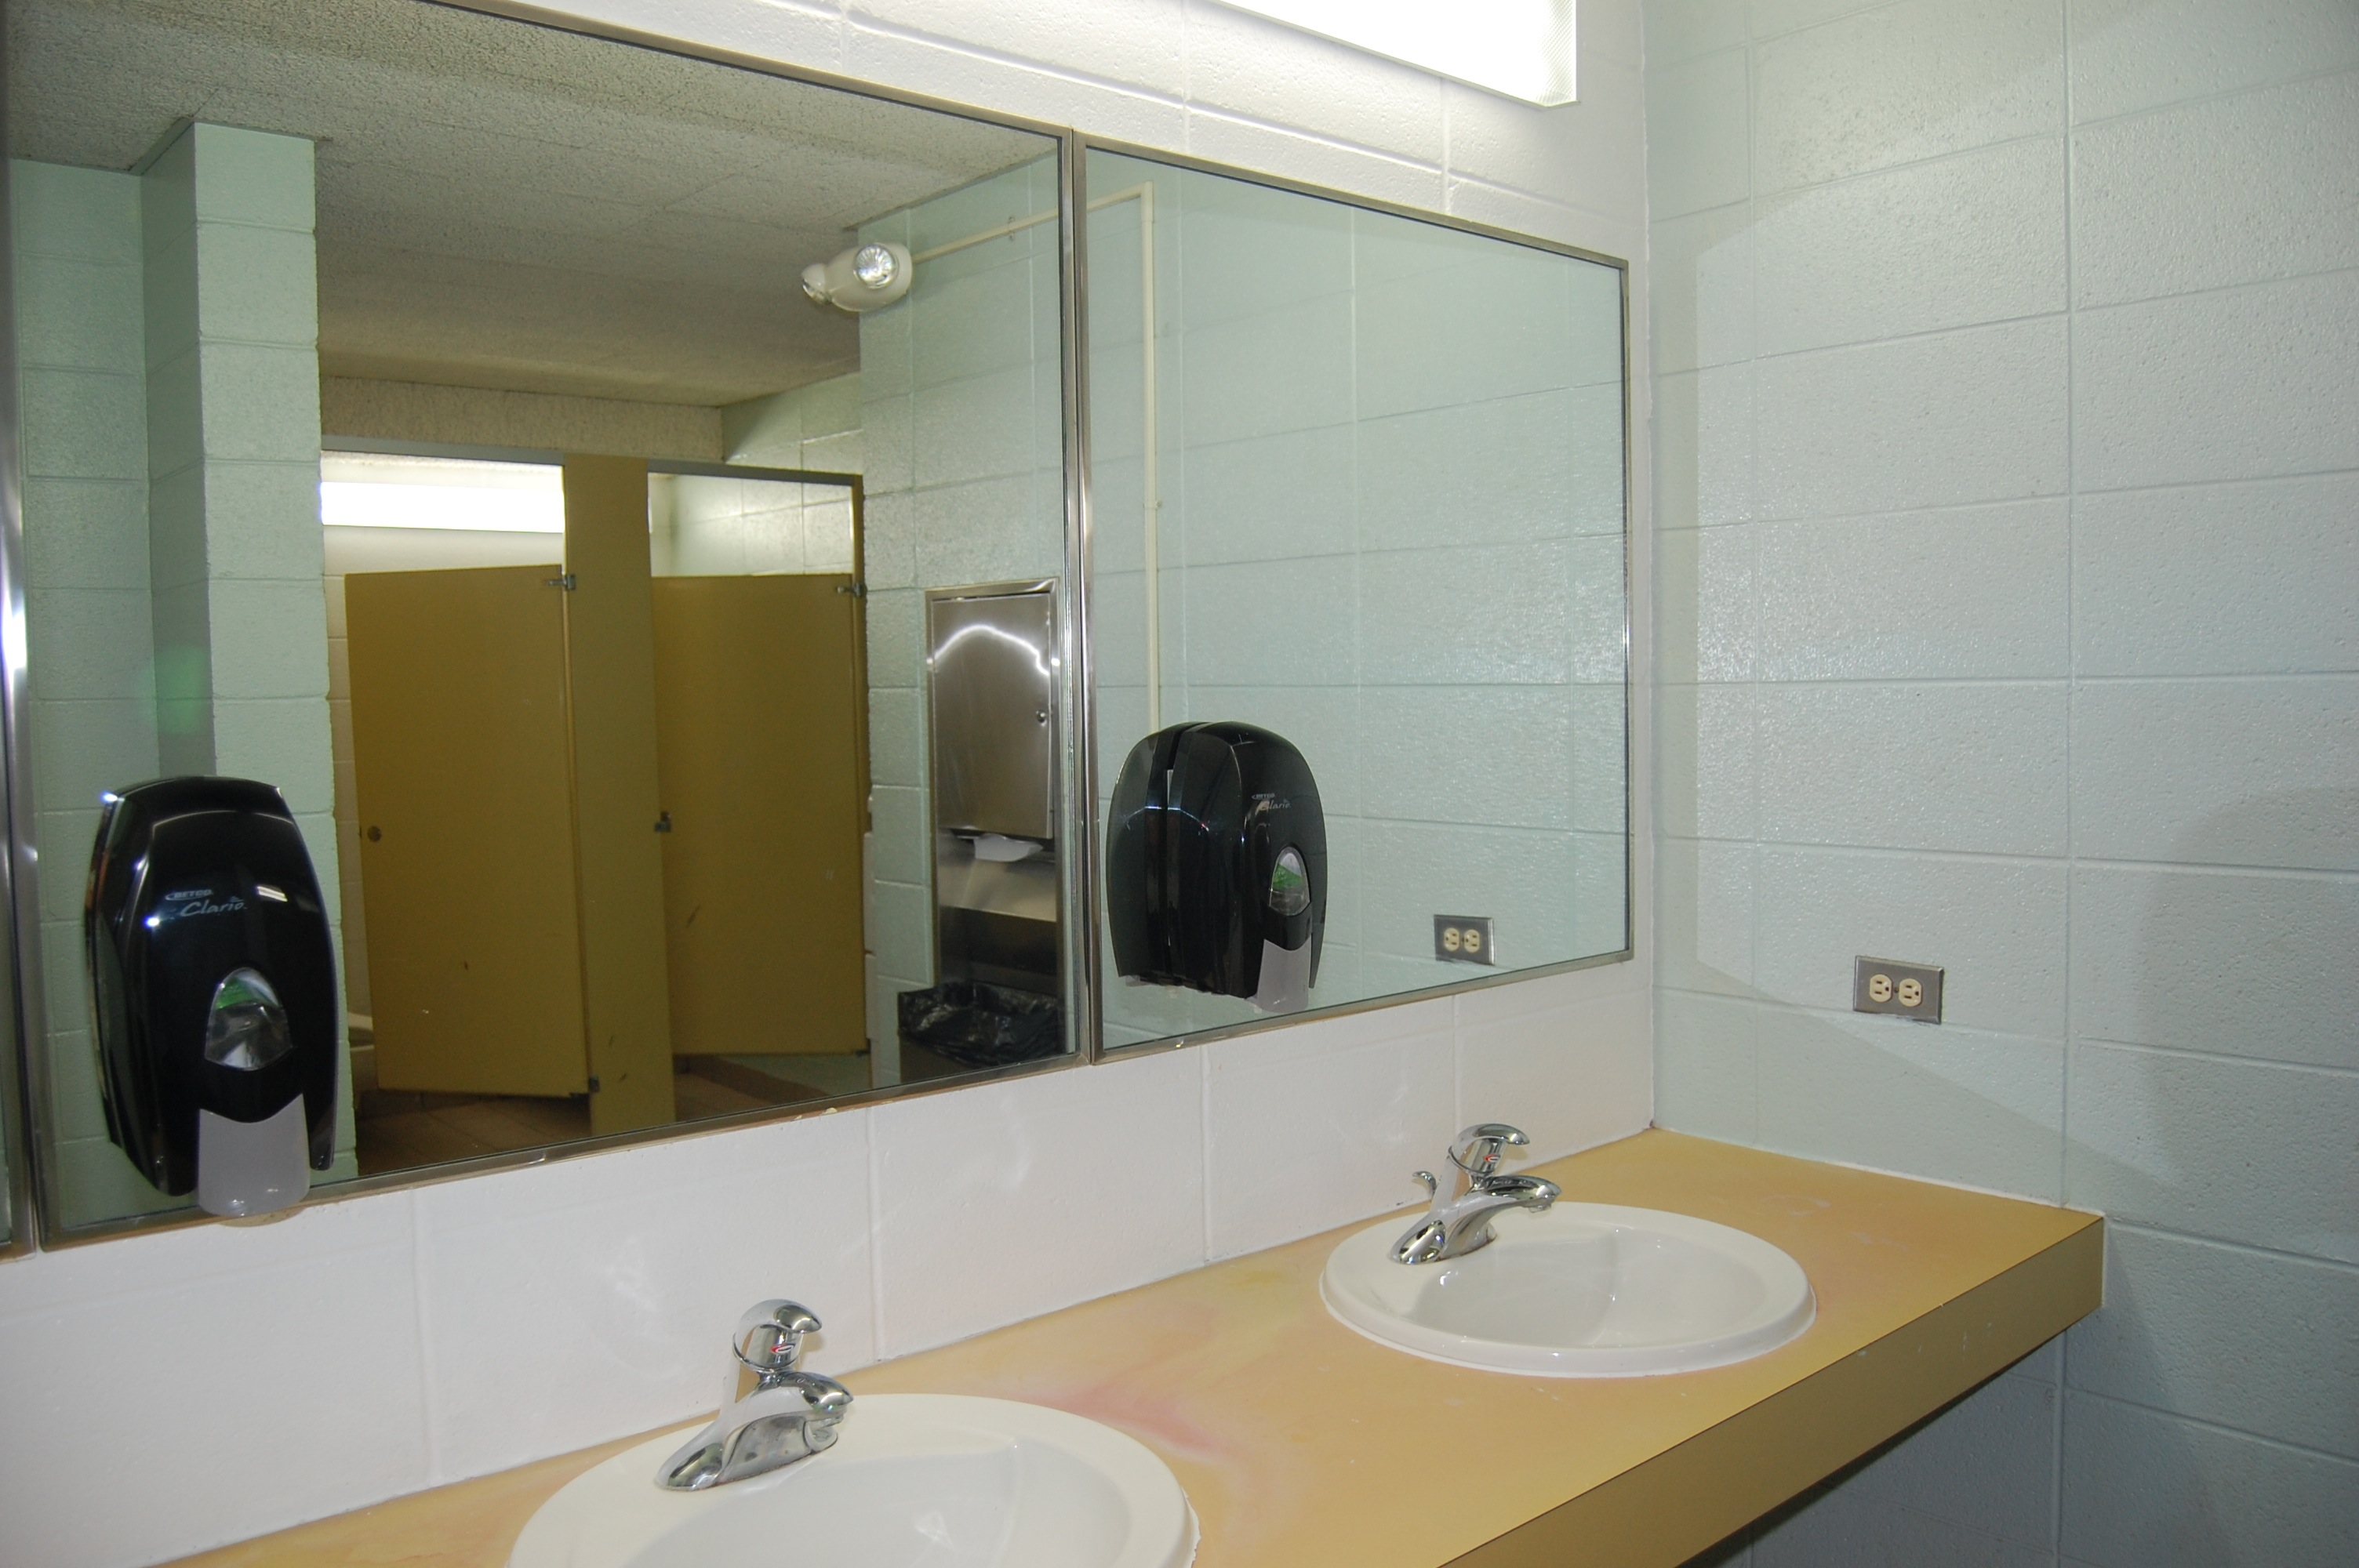 The bathroom laminate counters are stained and the restrooms need to be updated to serve all guests.